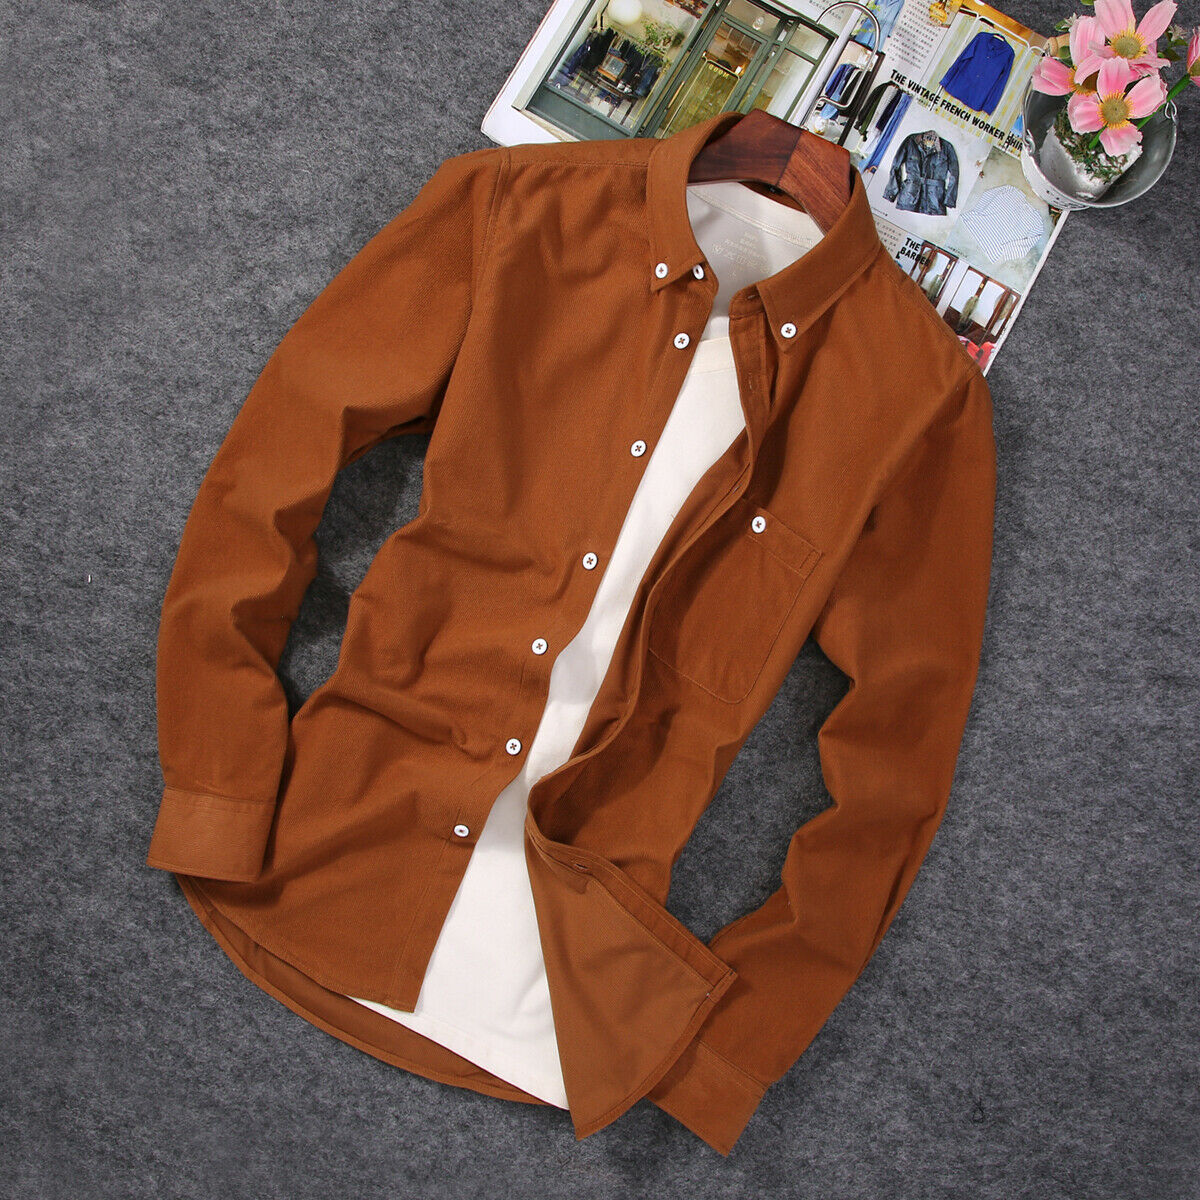 Fashion Men's Corduroy Stand Collar Shirts Winter Warm Long Sleeve Basic Solid Shirts Casual Tops Blouse